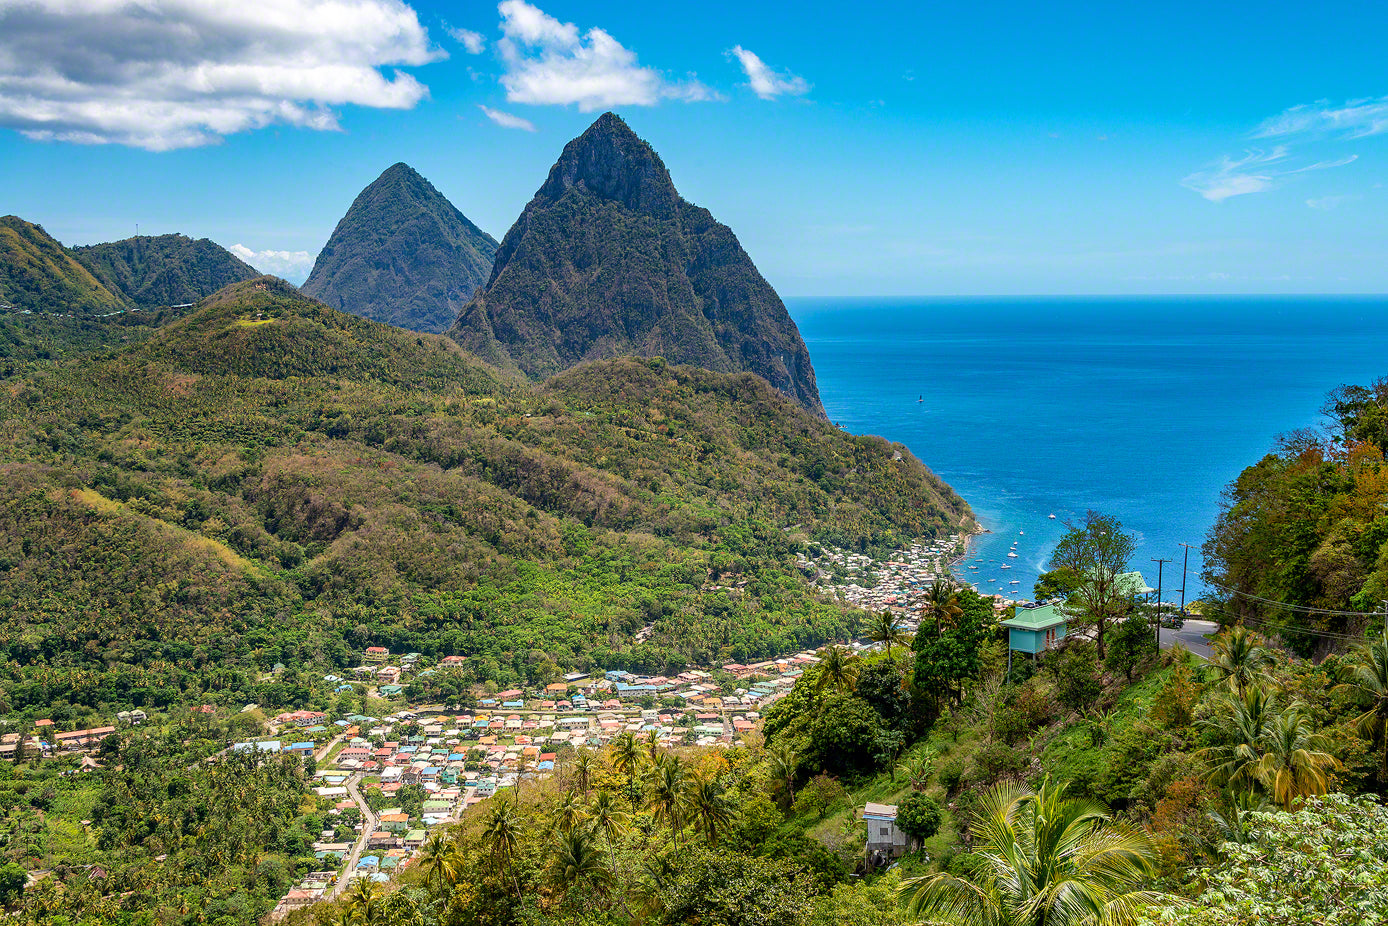 A photo of the beautiful Piton Mountains in St. Lucia